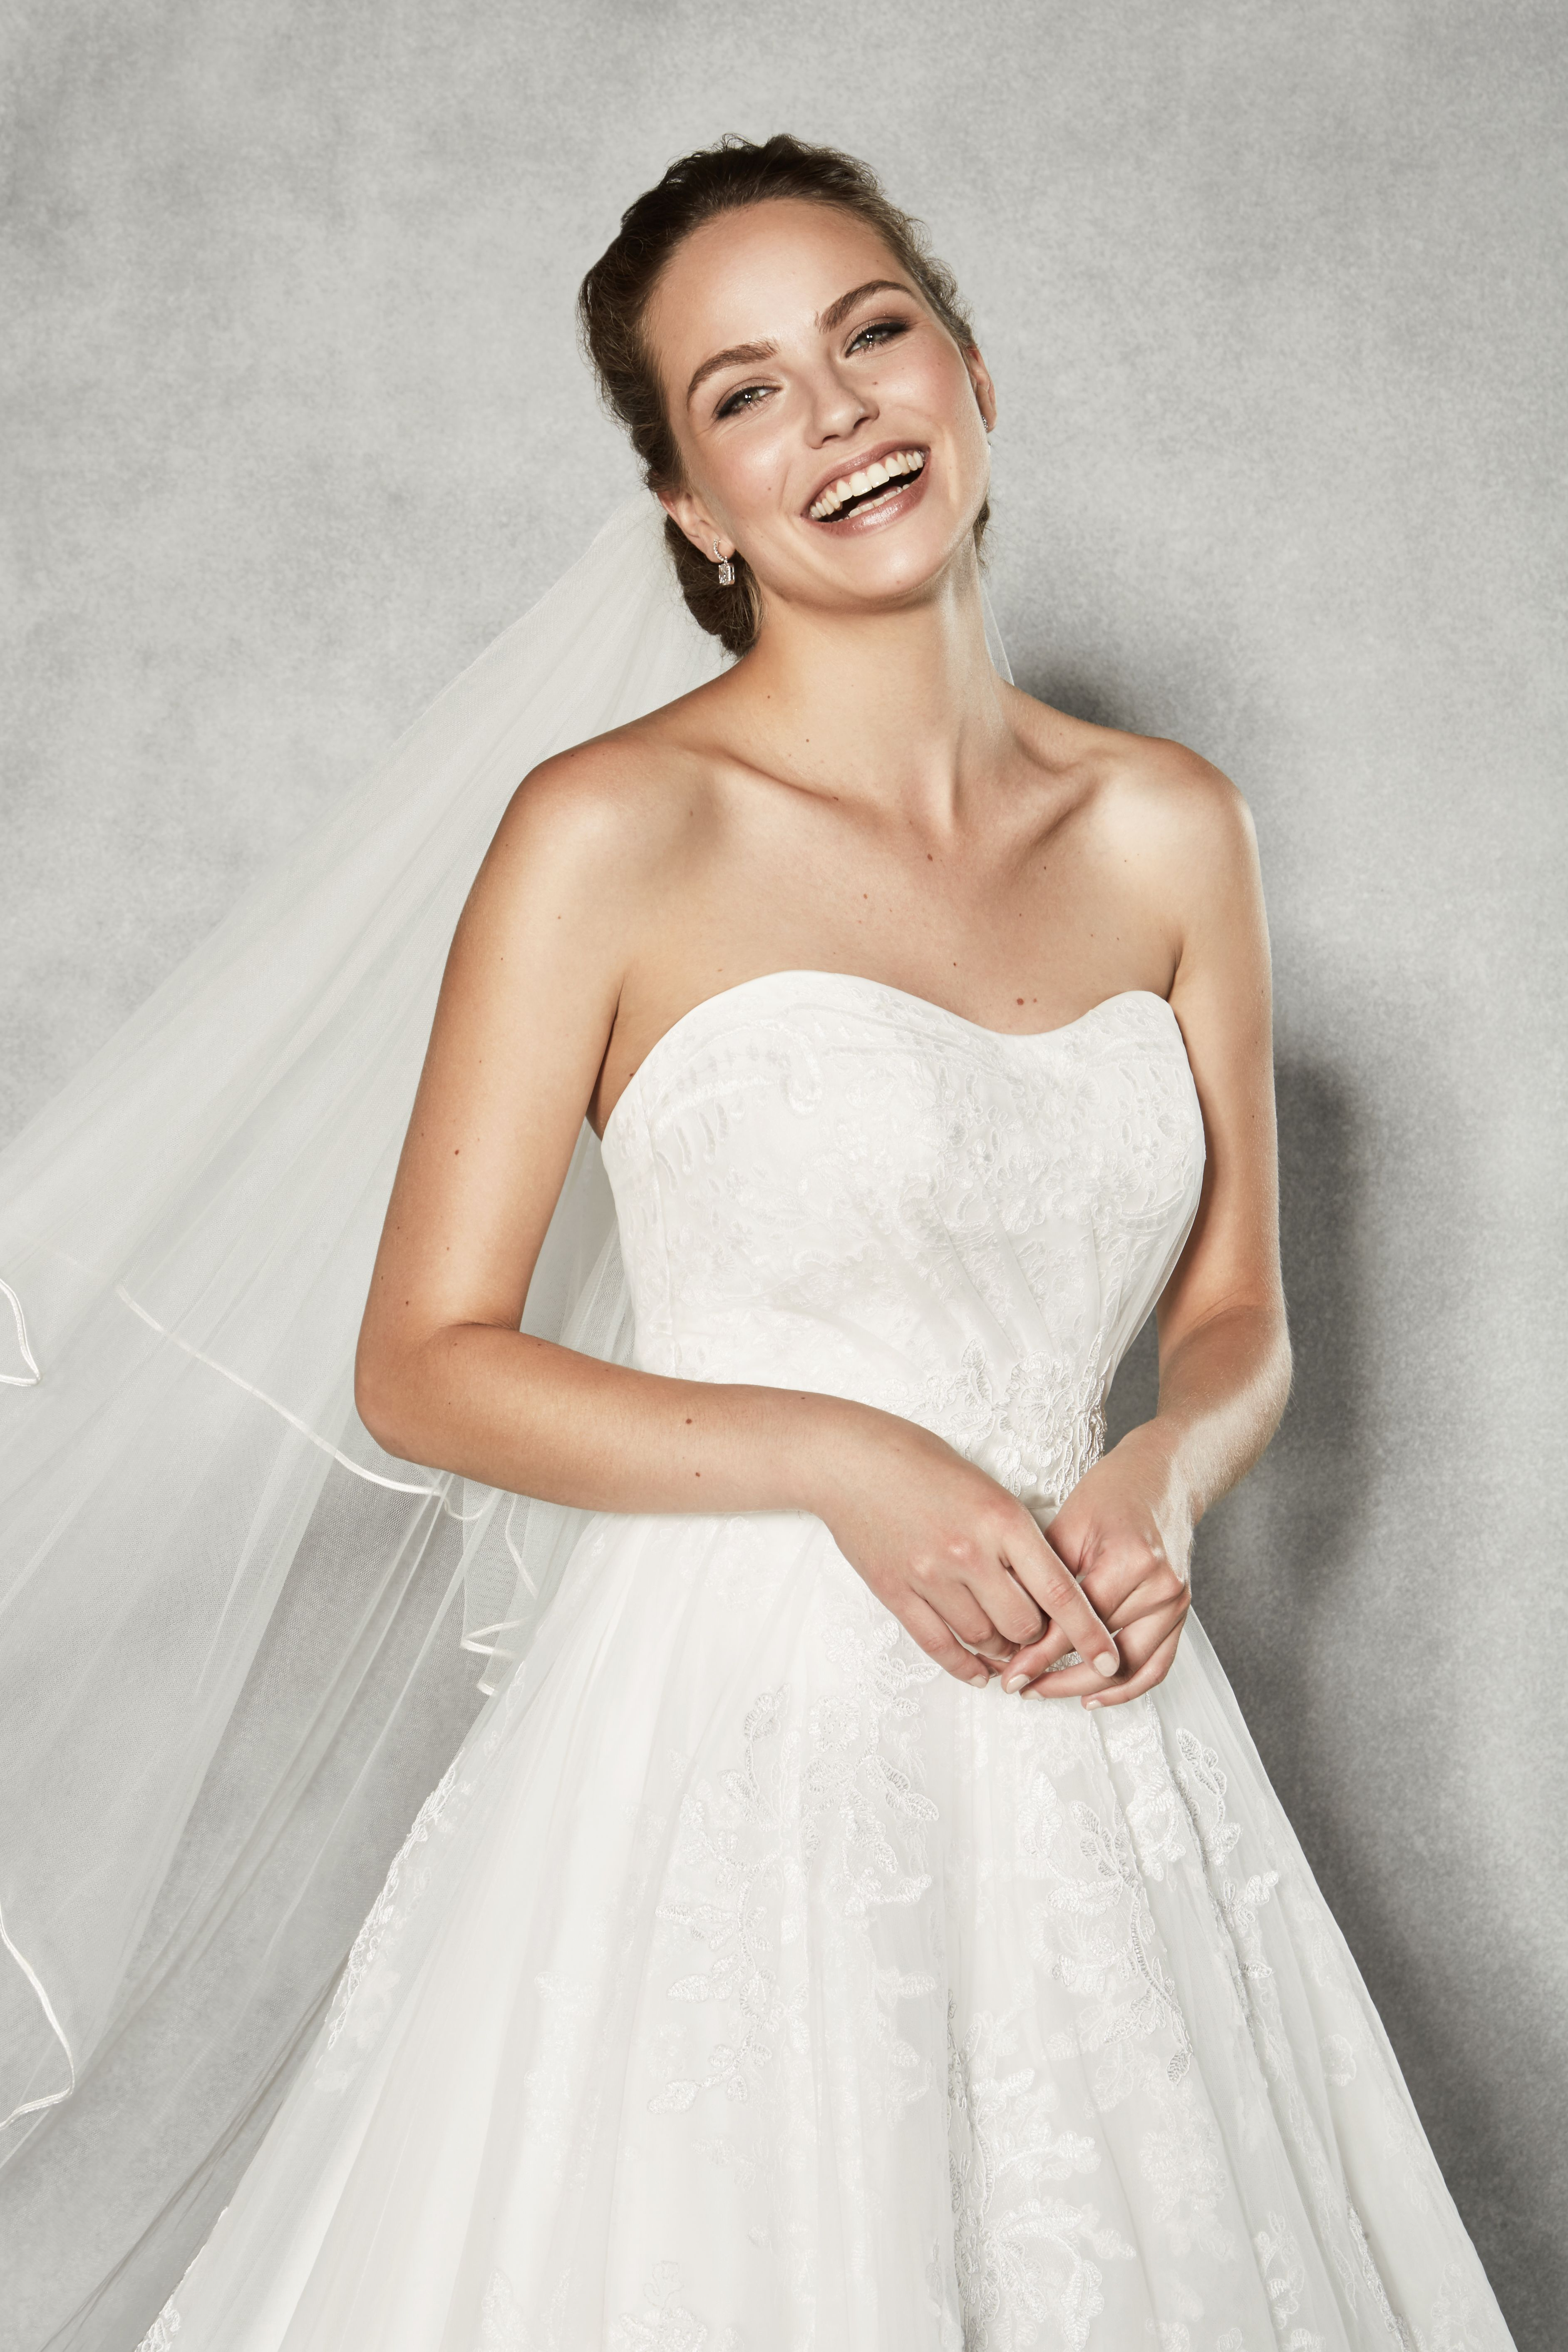 Lace dress wedding  The stunning uBrookeu by Anna Sorrano Could this strapless lace